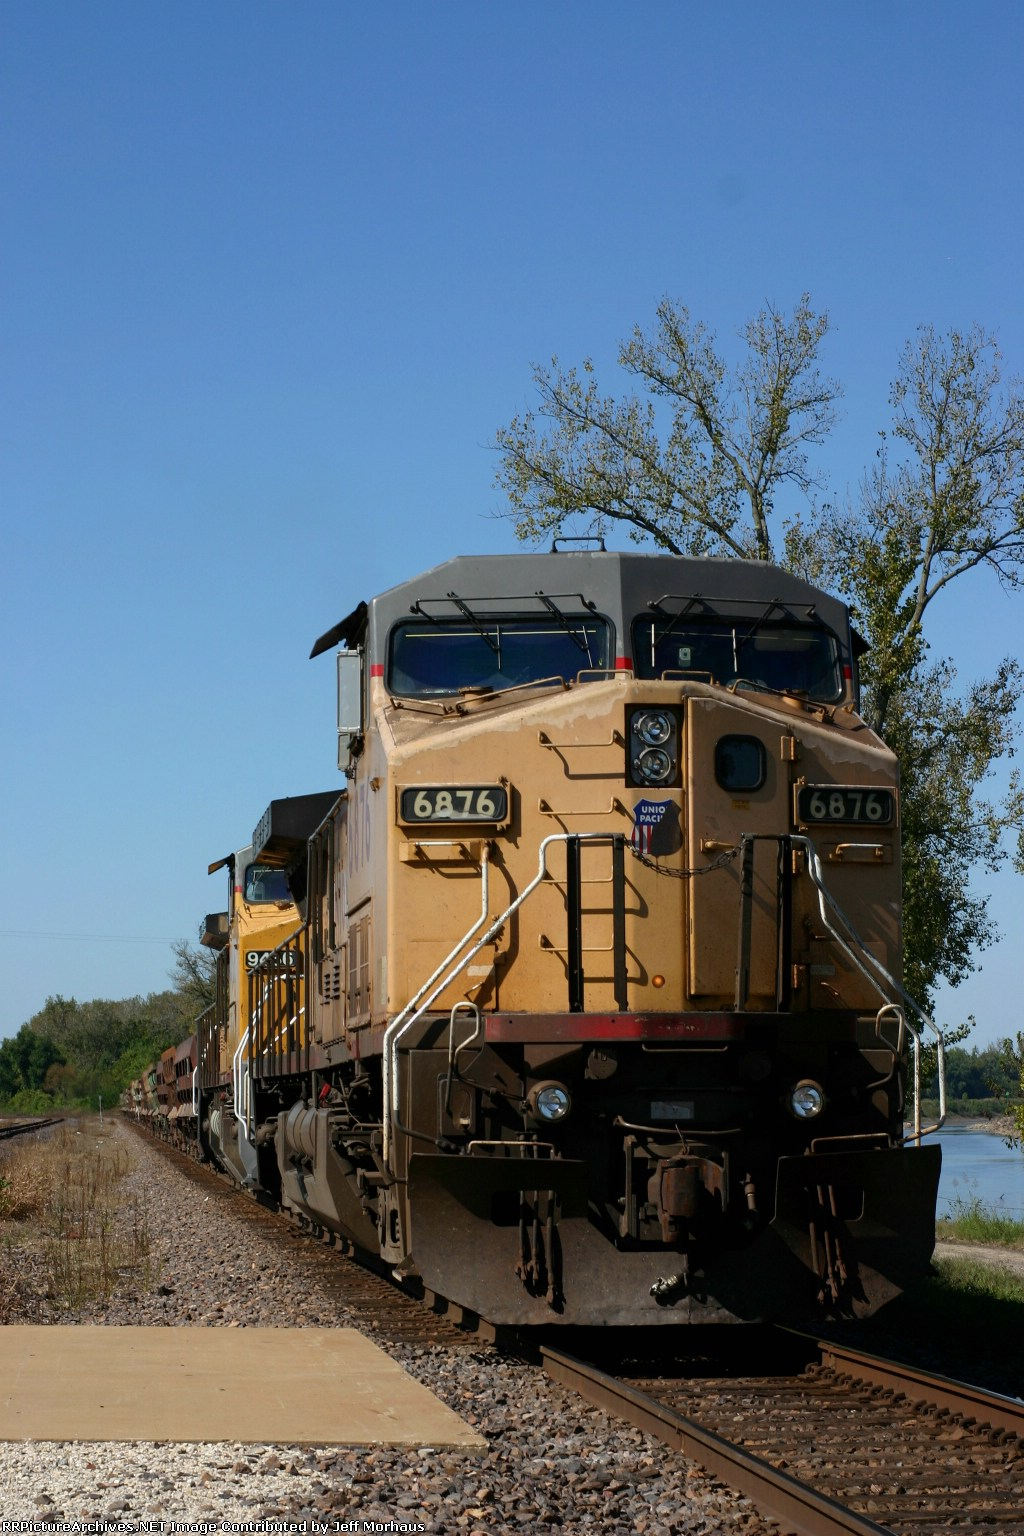 UP 6876 sits and waits cause of the derailment in Pacific Missouri.